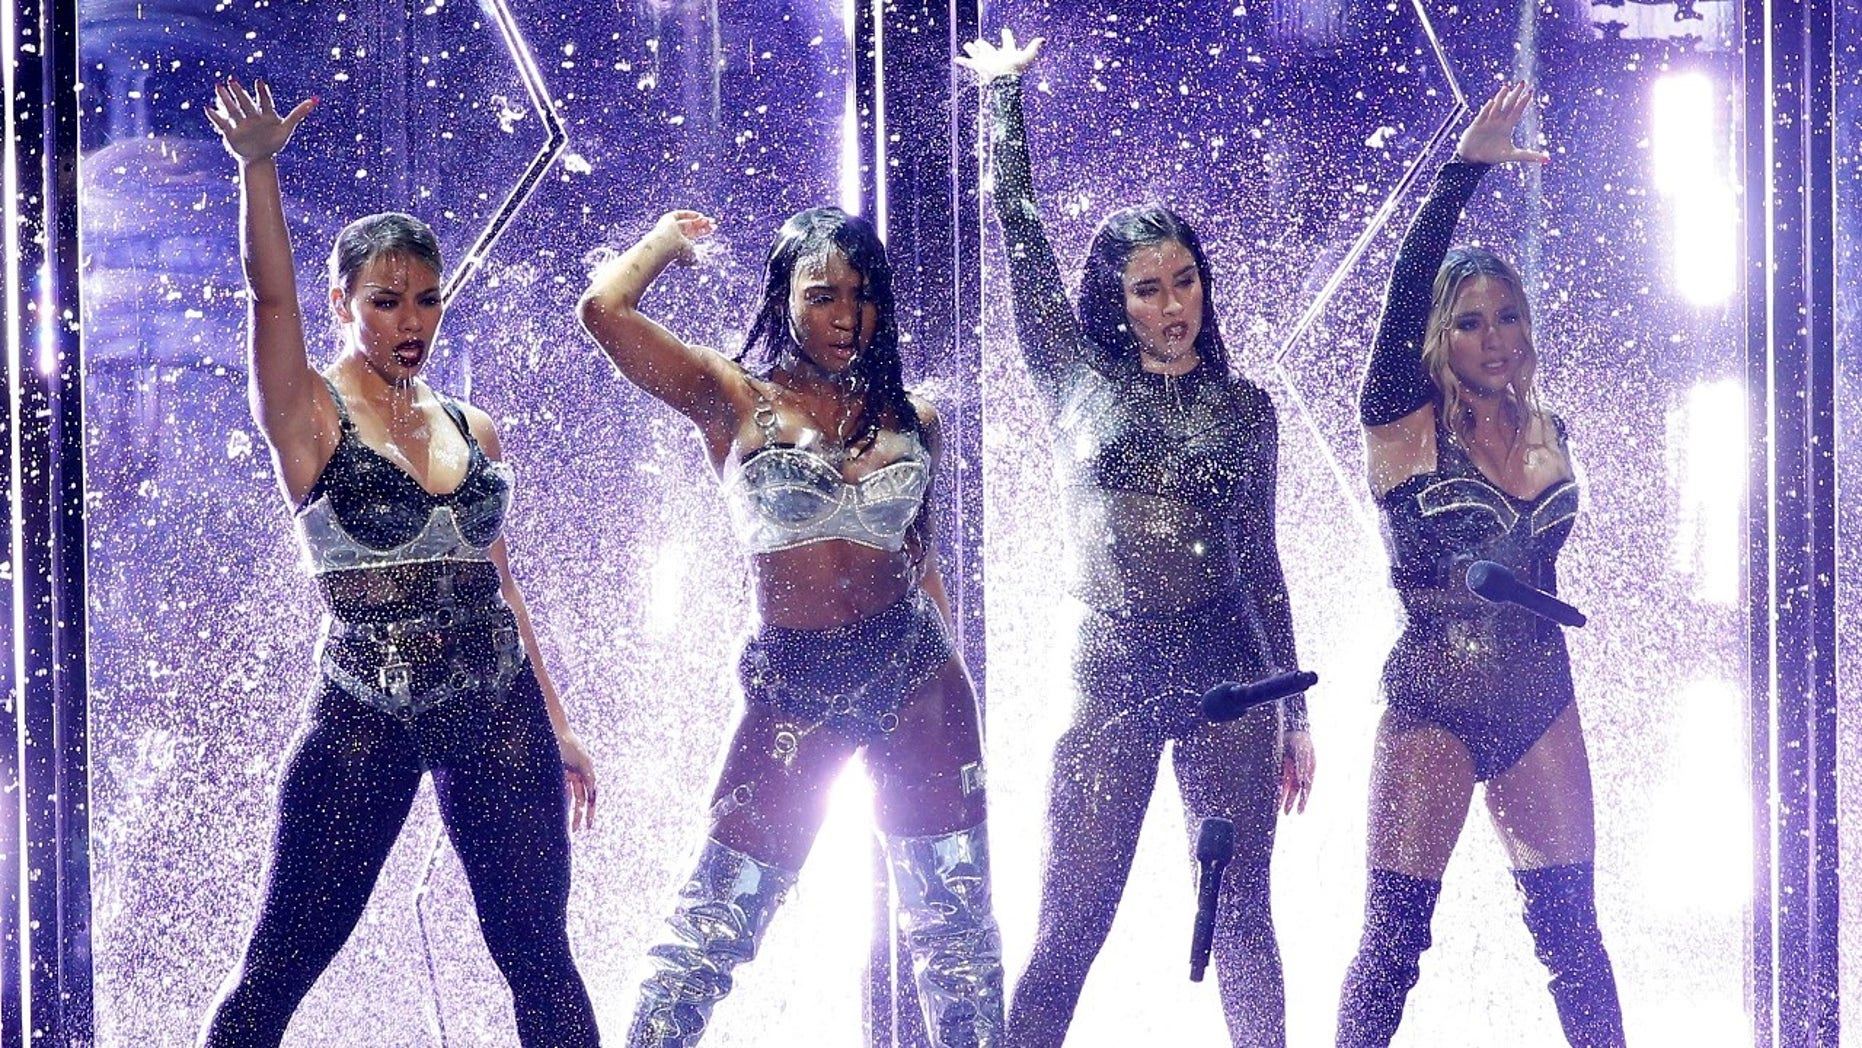 Fifth Harmony during the 2017 MTV's VMAs. The group performed its last show together on Friday before taking an indefinite break.